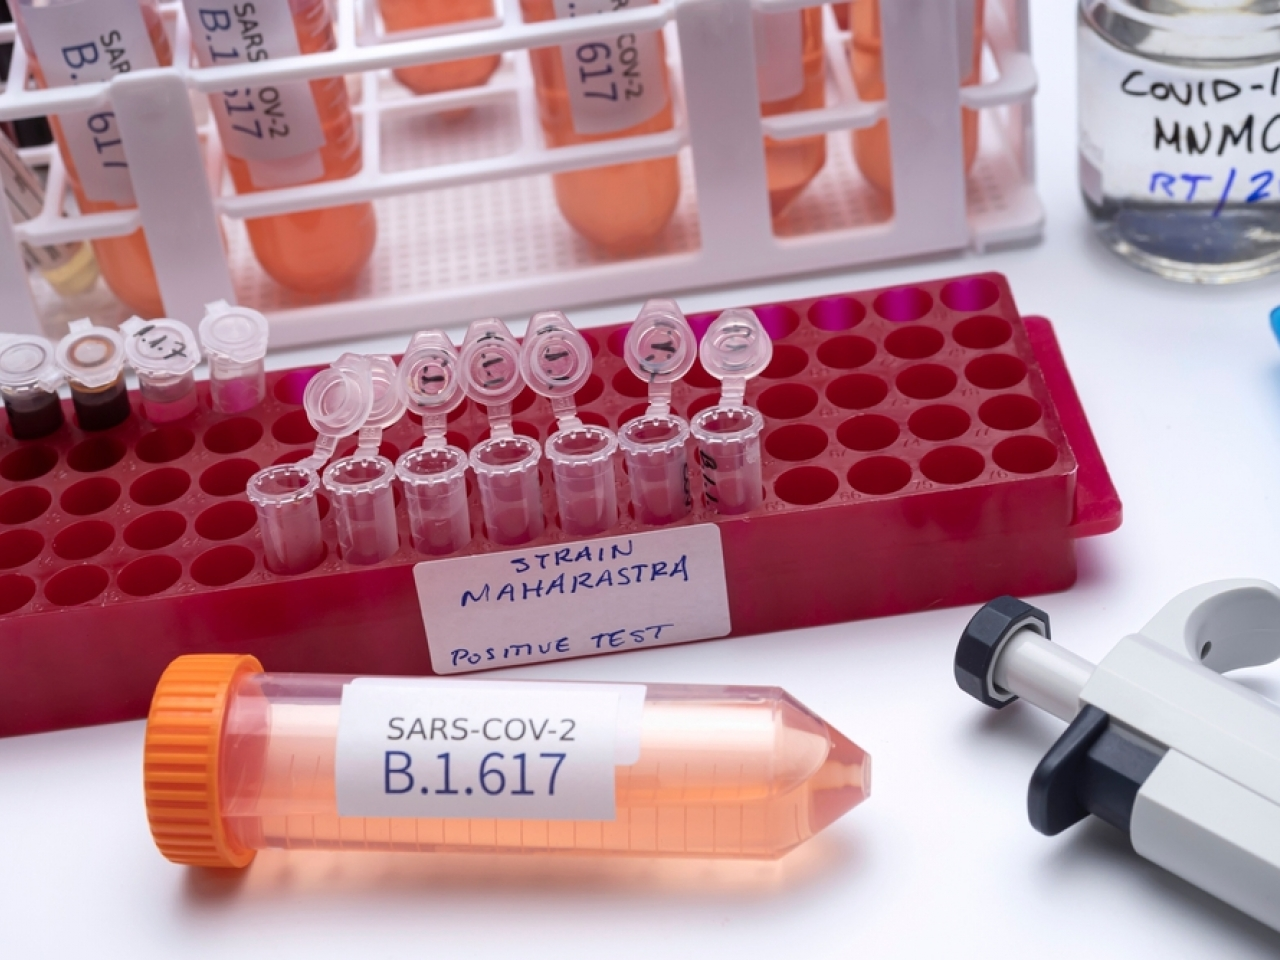 The WHO says the B.1.617 variant appears to be transmitting more easily than the original virus. Photo: Shutterstock